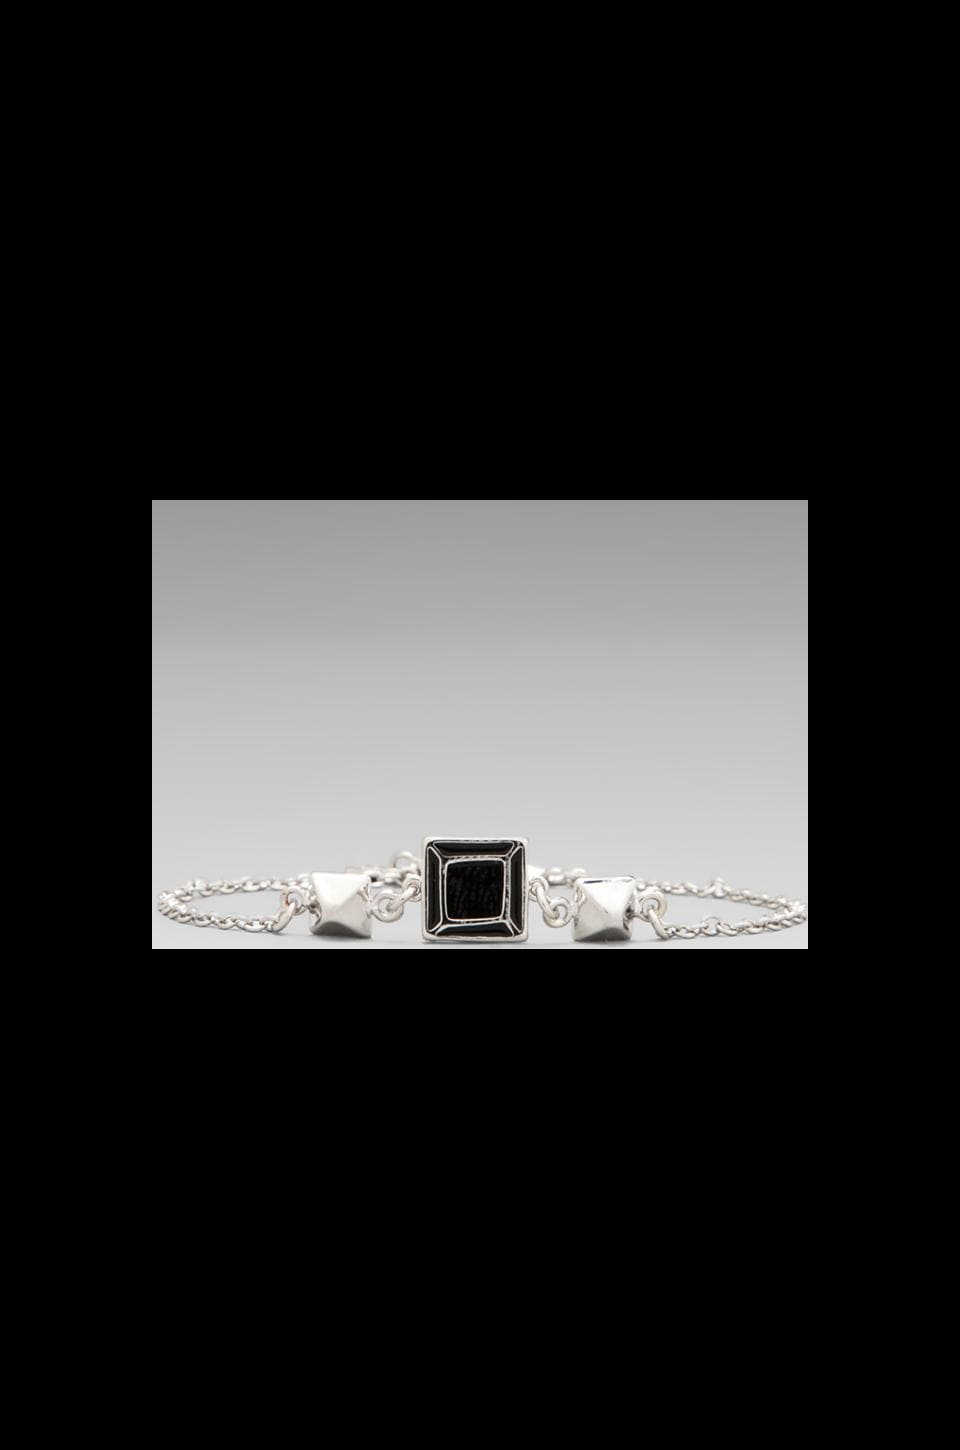 Marc by Marc Jacobs Gem Slices Tiny Gem Bracelet in Black/Argento